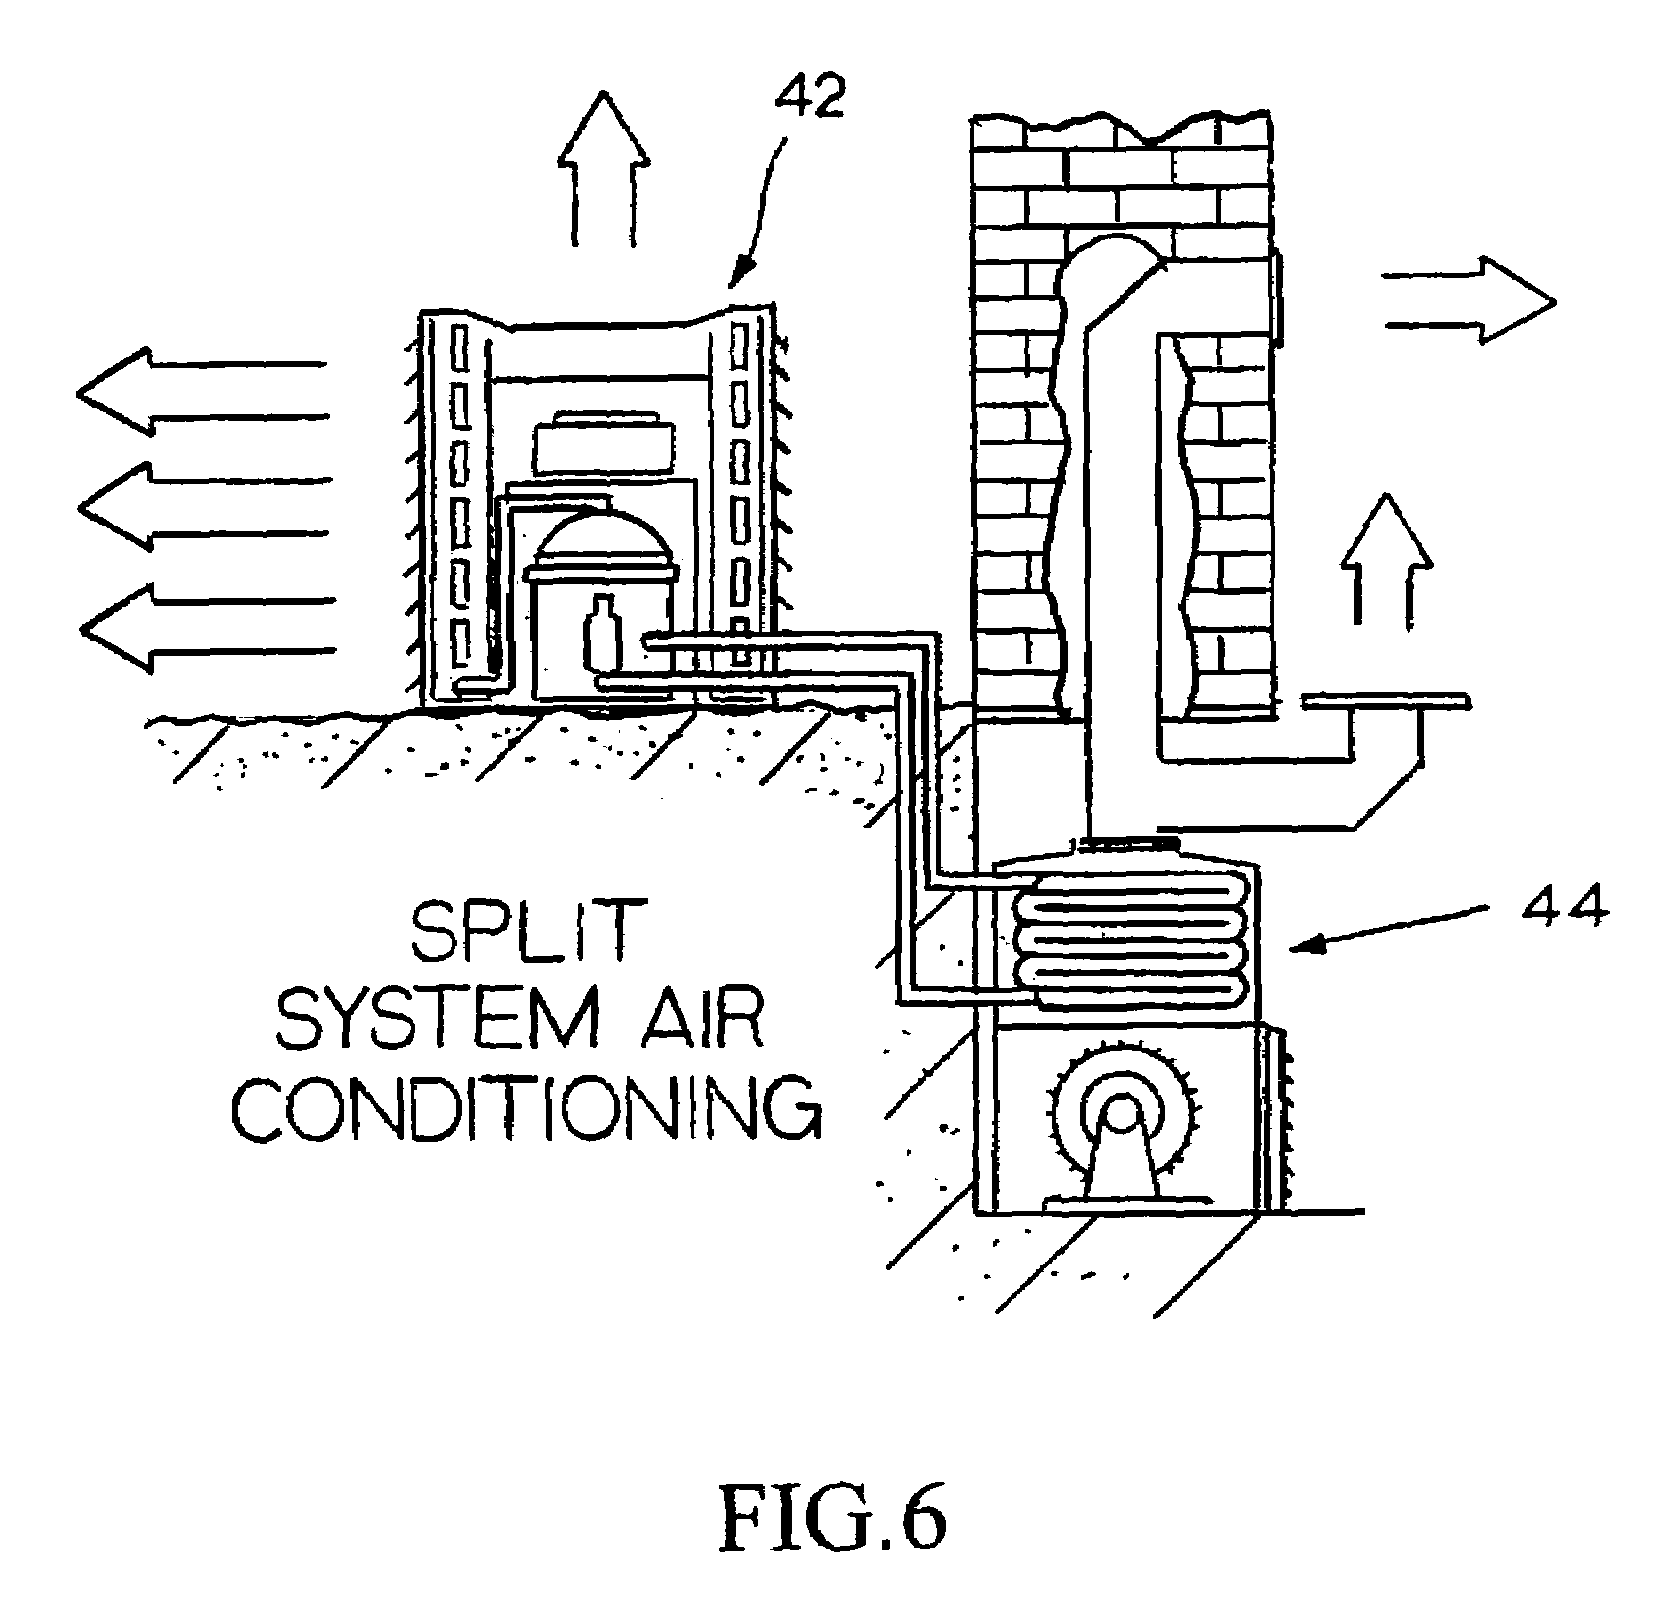 Automated air conditioner drain line clean out system   Patents #666666